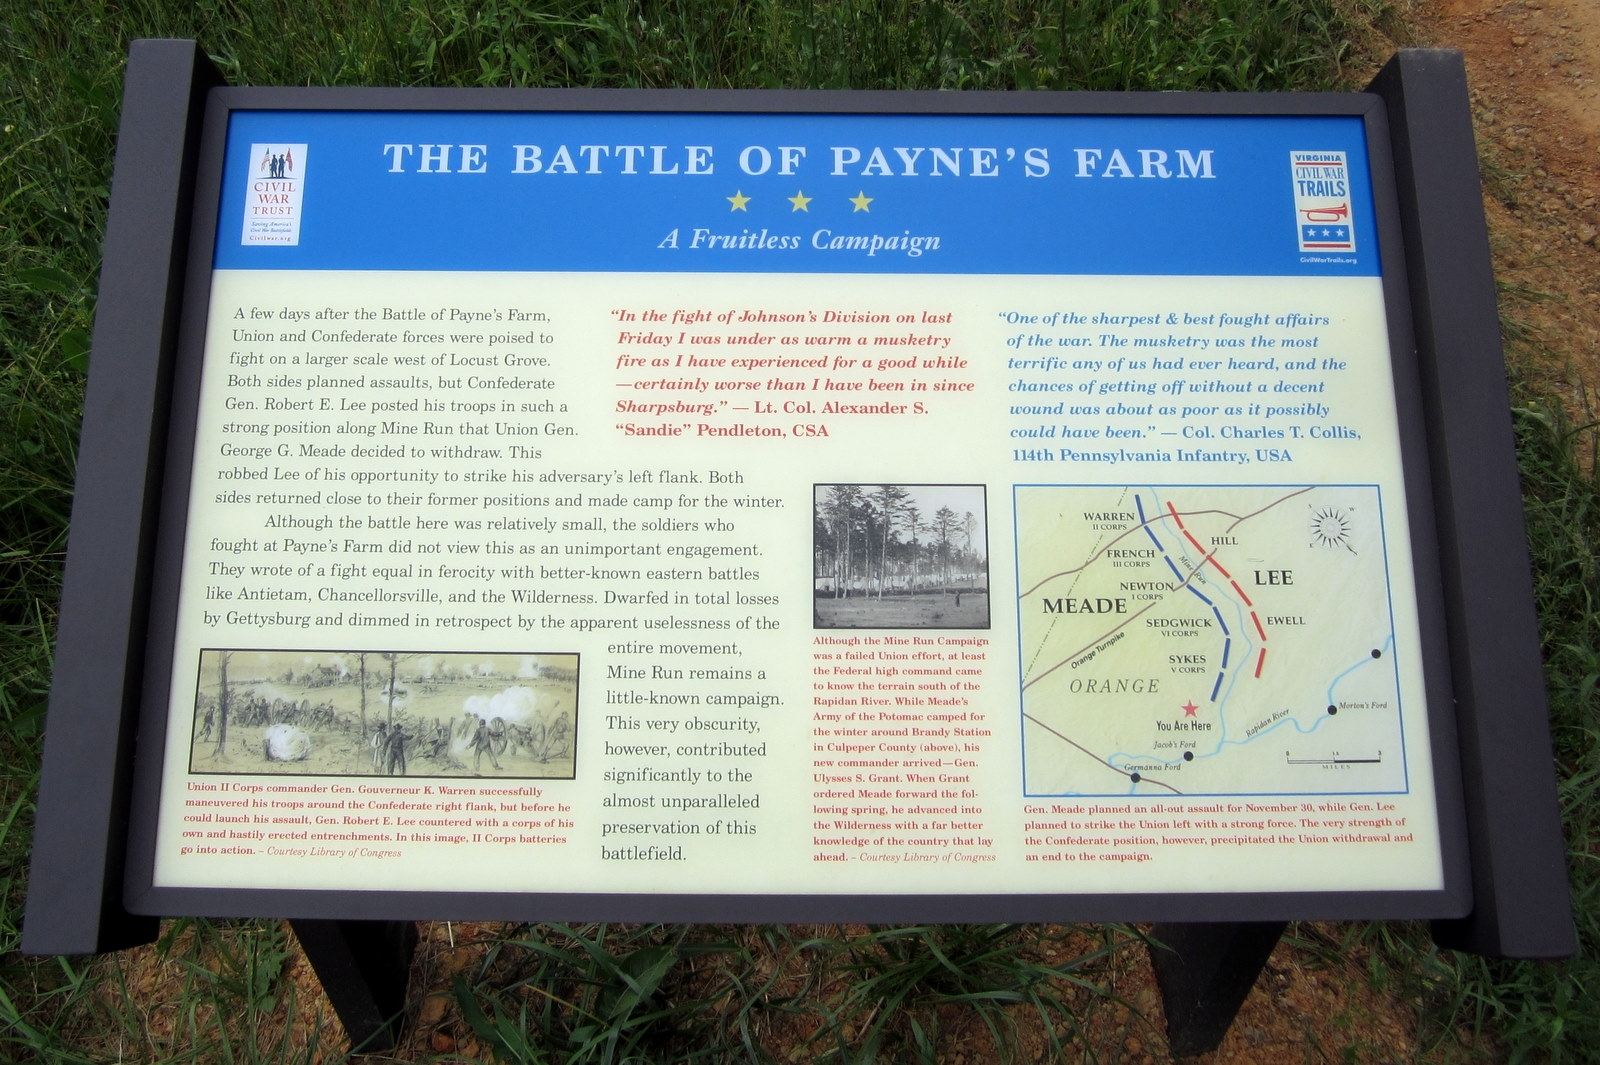 The Battle of Payne's Farm CWT Marker